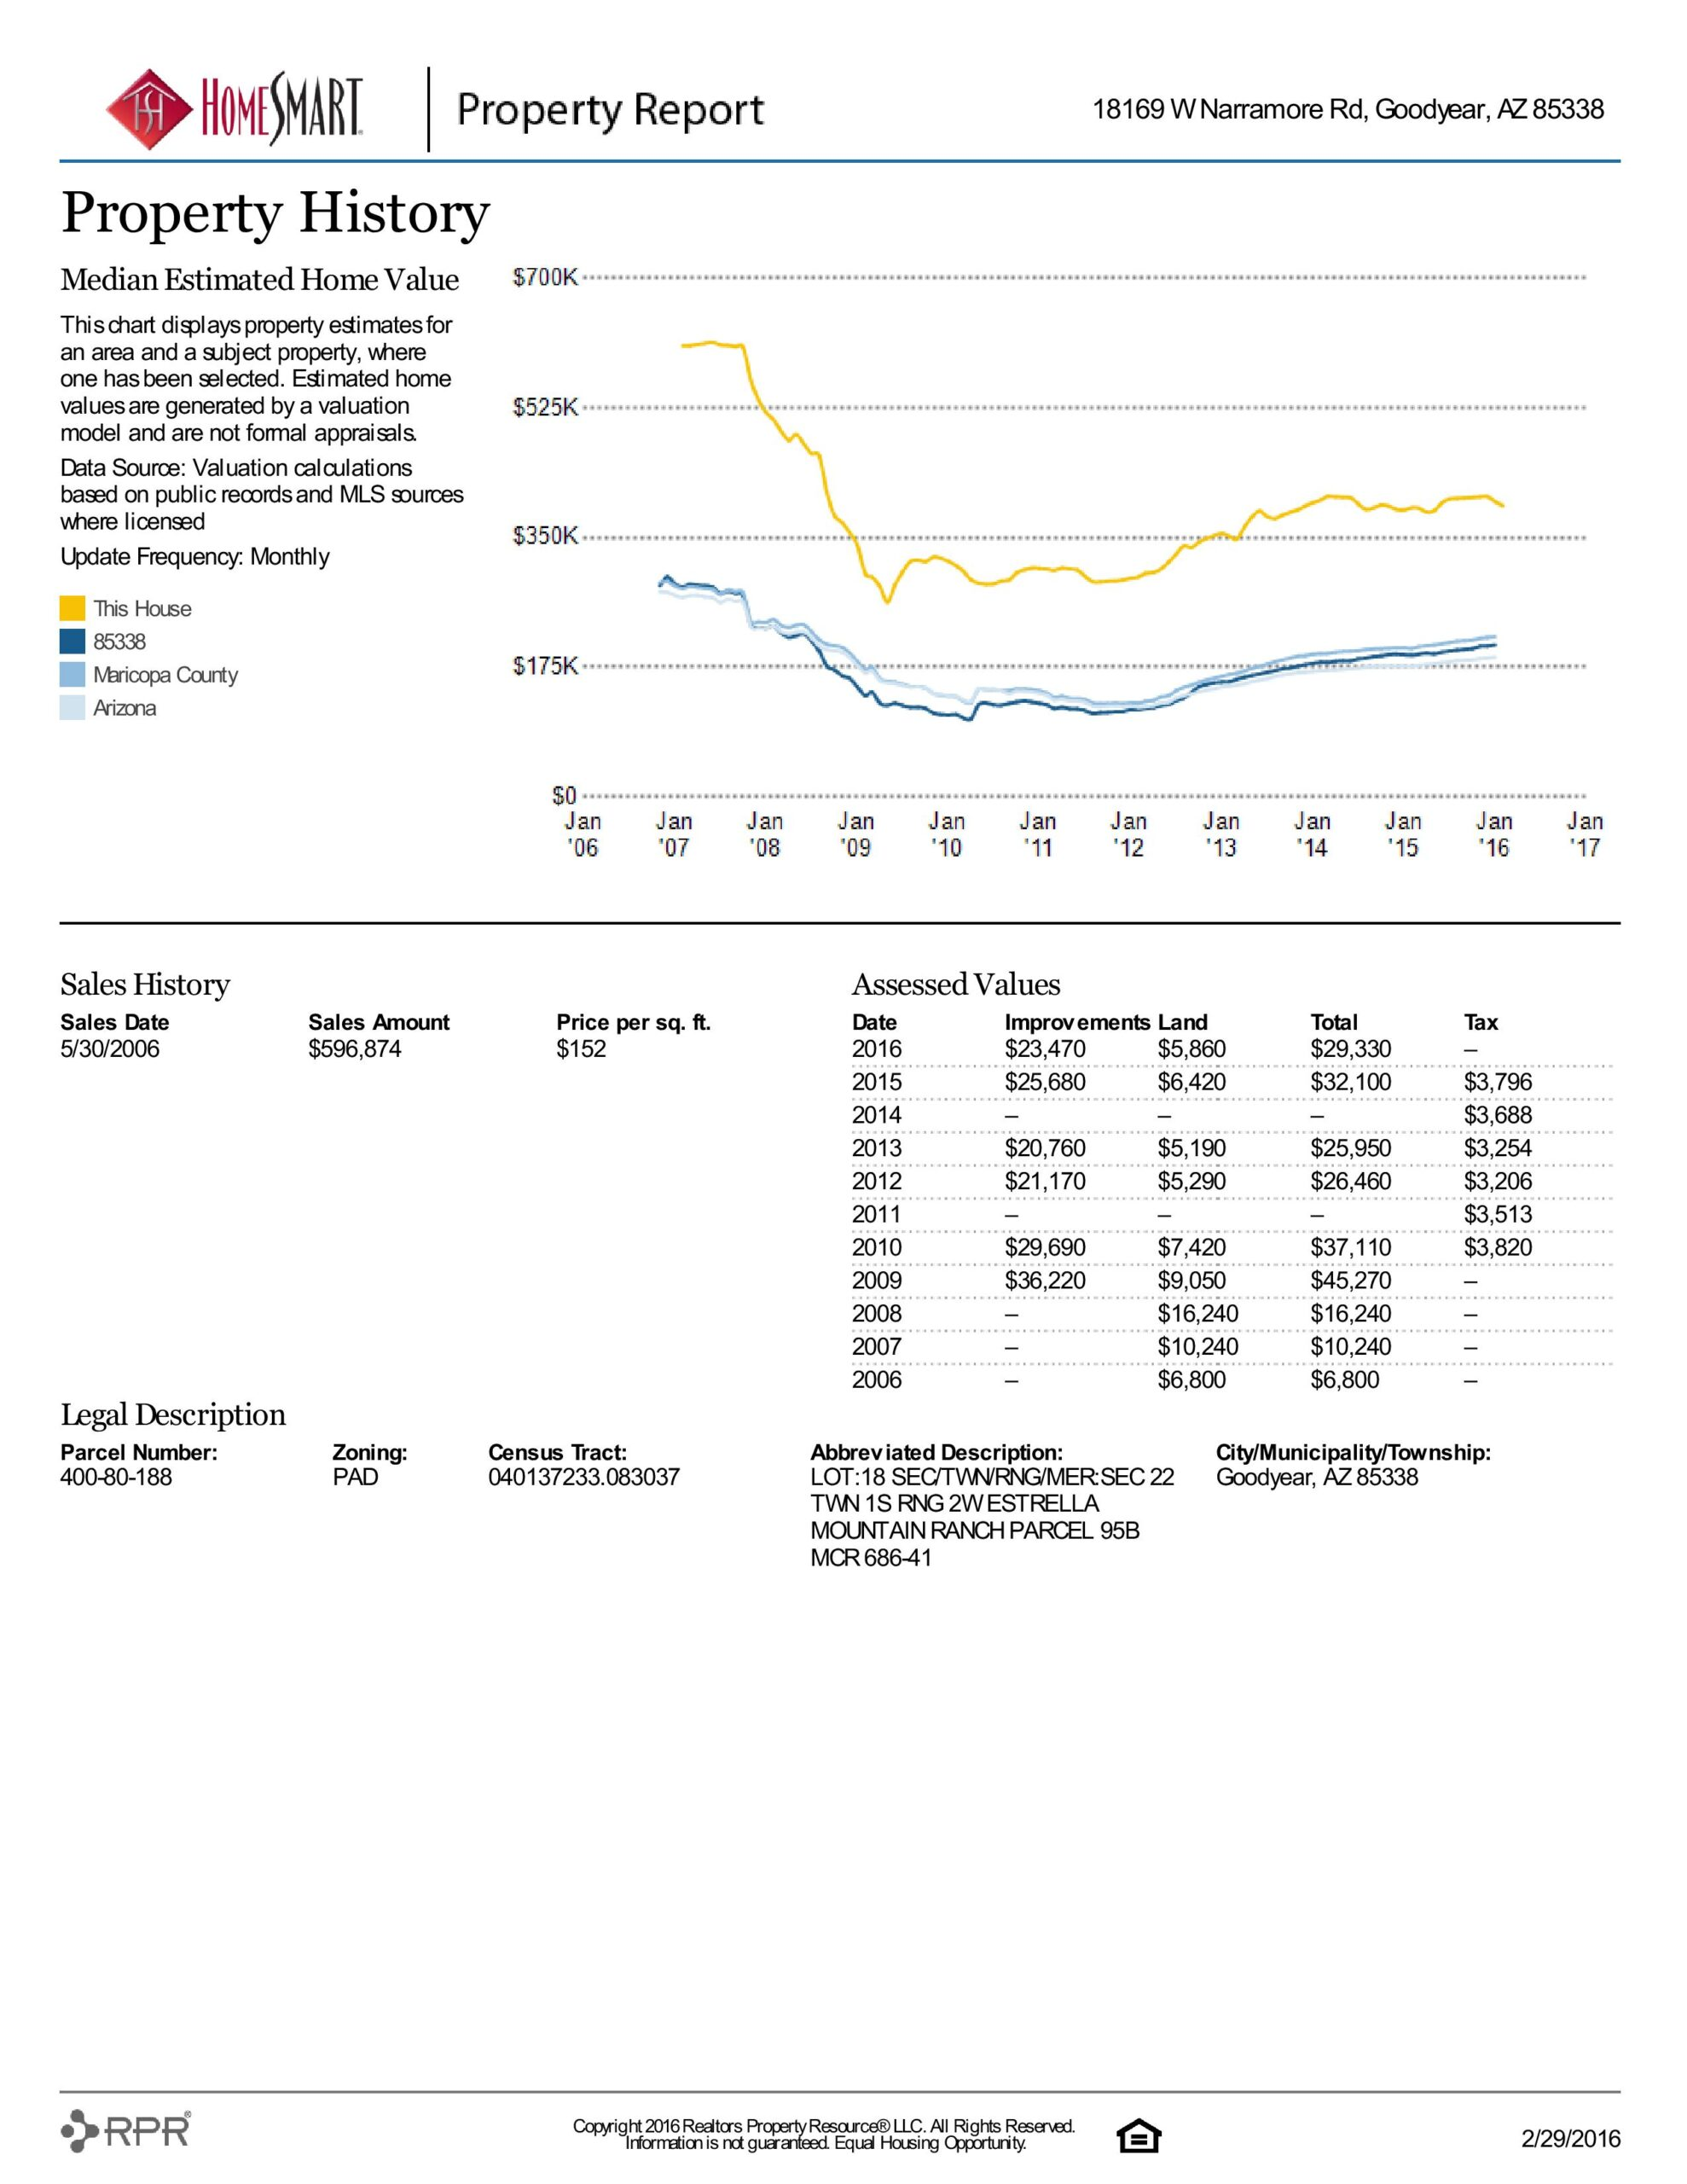 18169 W NARRAMORE RD PROPERTY REPORT-page-011